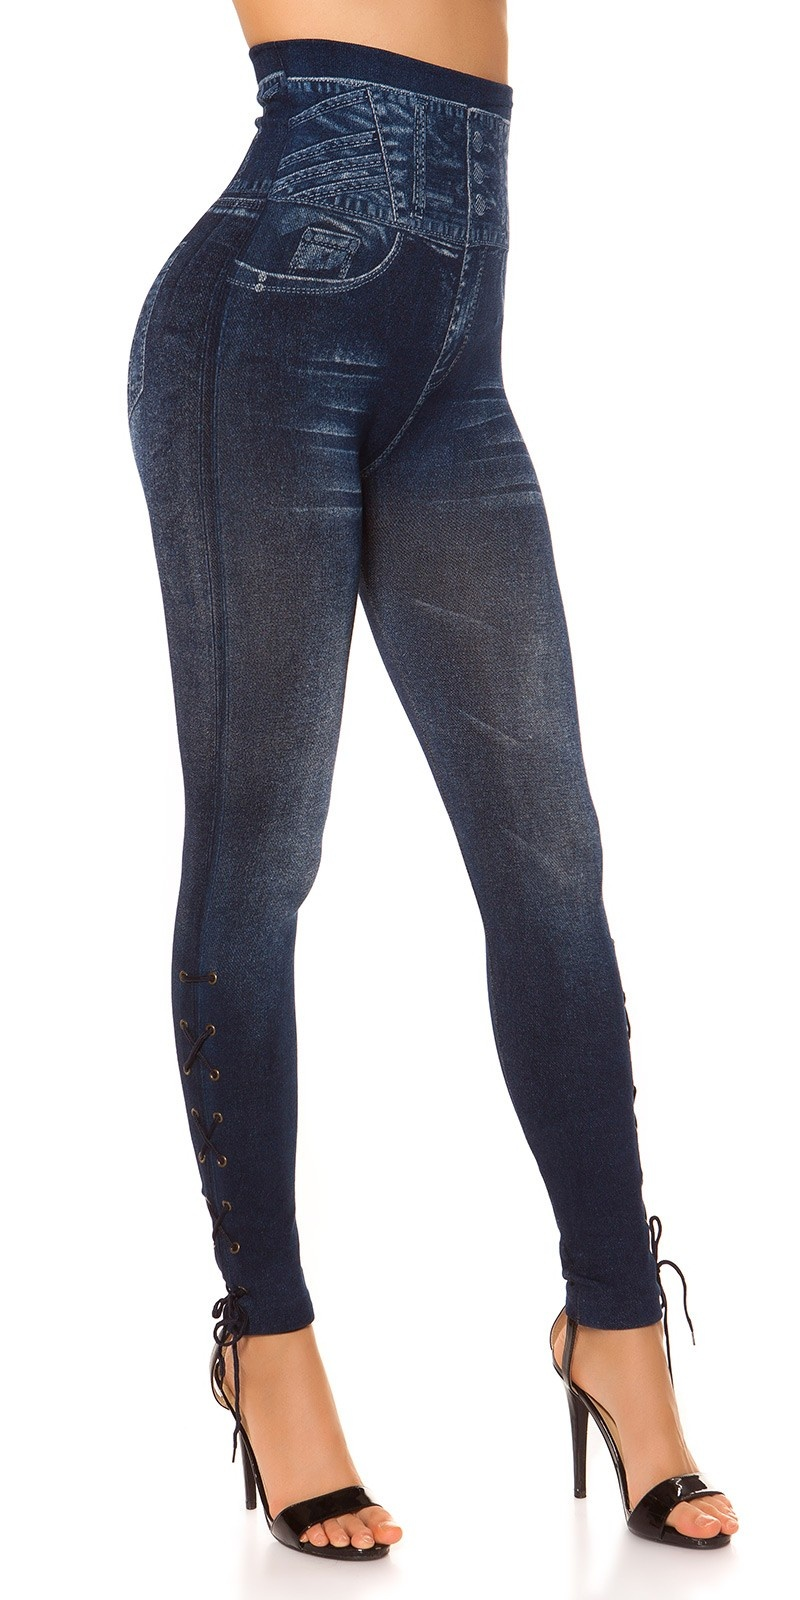 Sexy Highwaist Jeanslook Leggings w. Lacing Blue